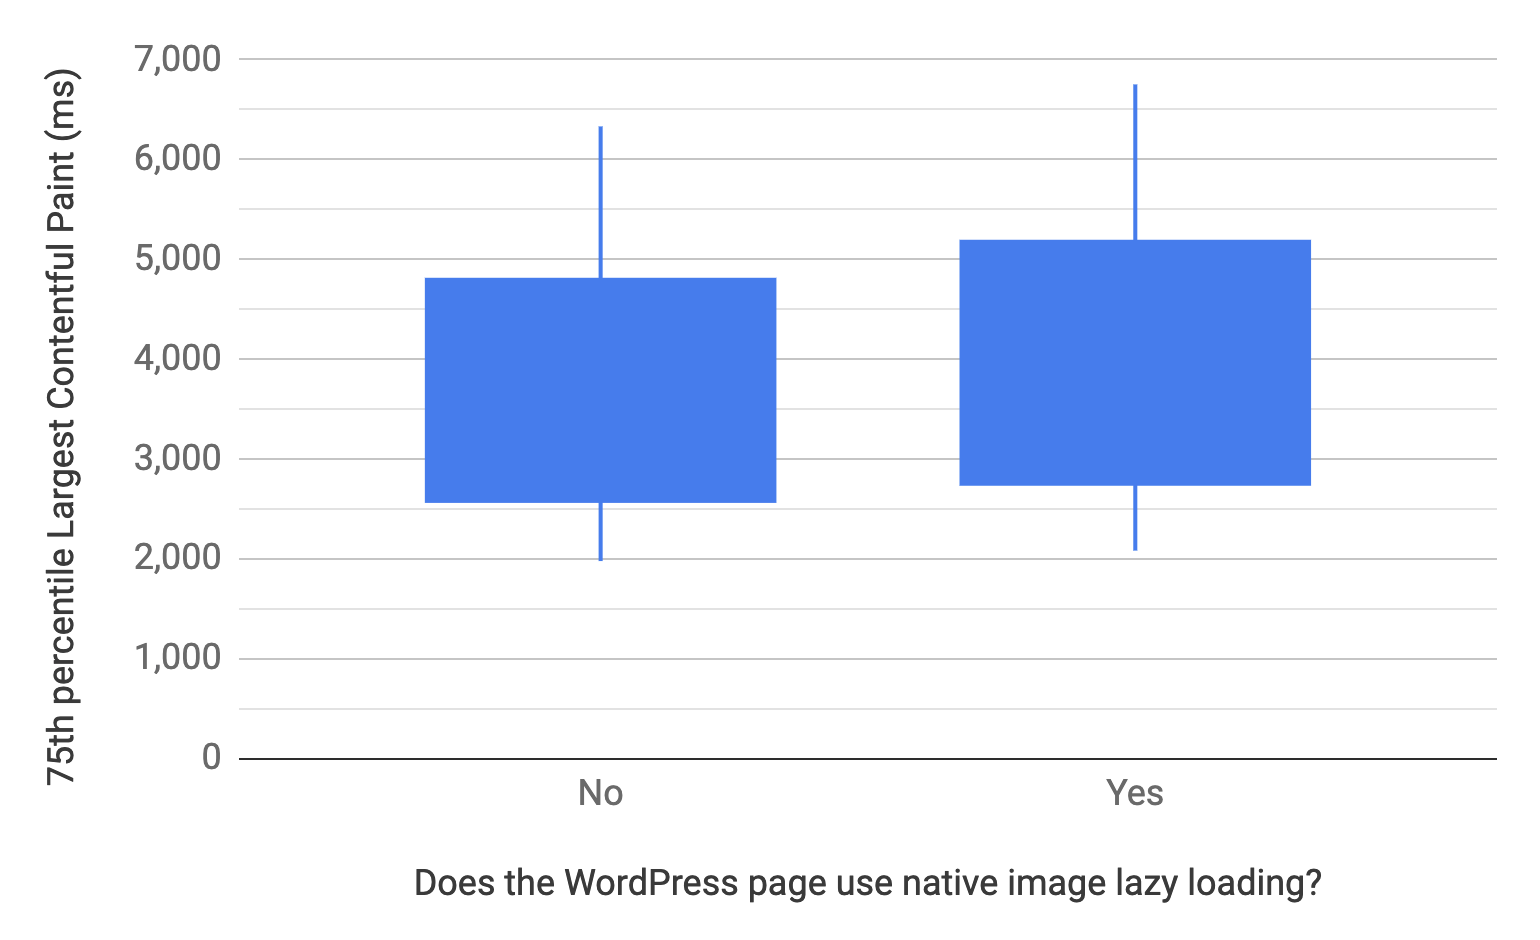 Box and whisker chart showing the 10, 25, 75, and 90th percentiles for WordPress pages that do and do not use native image lazy-loading. Comparatively, the LCP distribution of pages that do not use it is faster than those that do, similar to the previous chart.